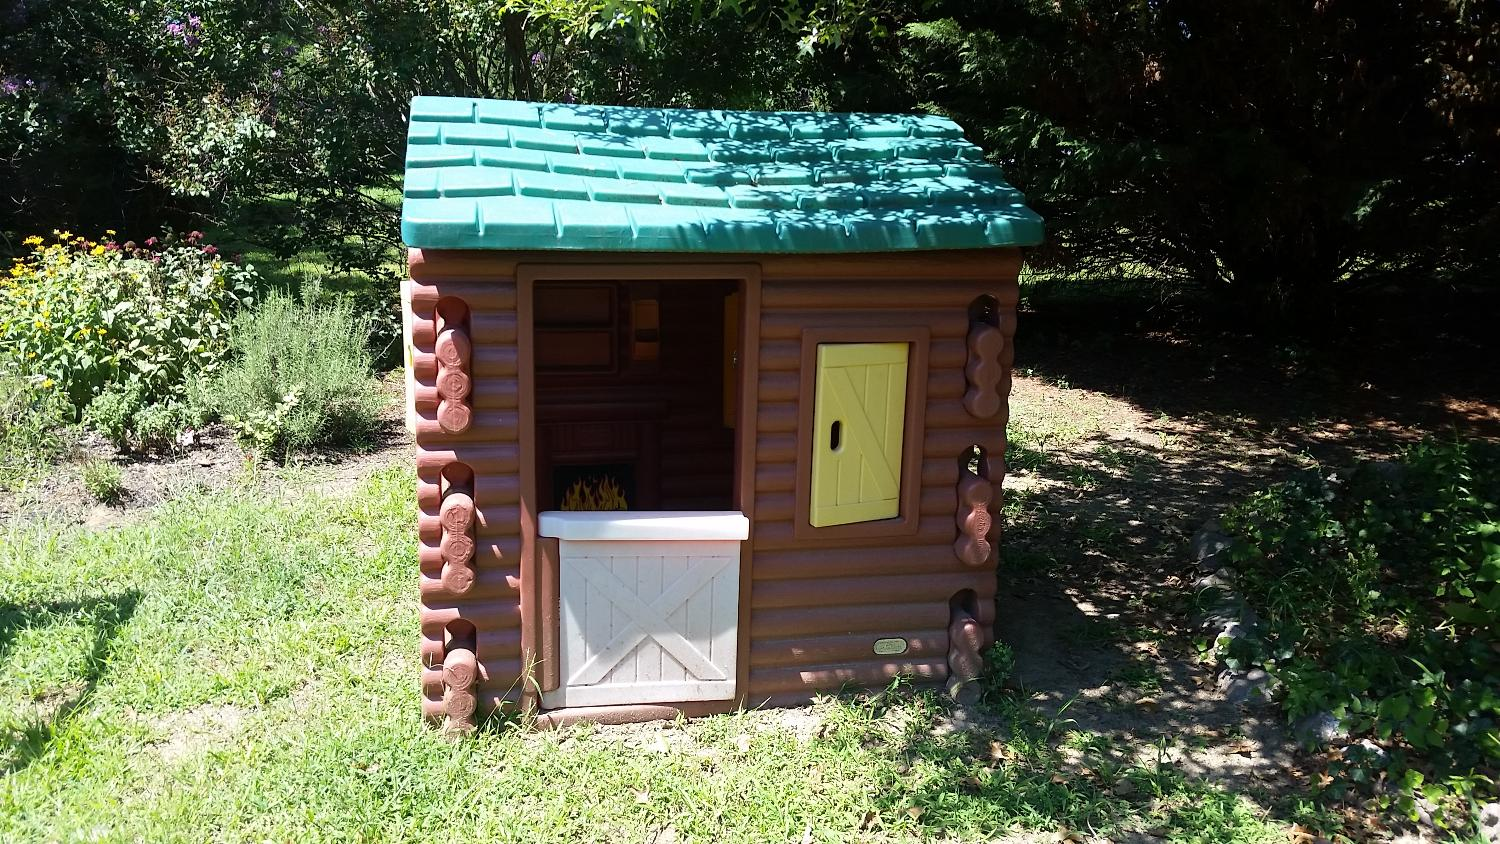 Find More Price Reduced Fisher Price Log Cabin Playhouse Good